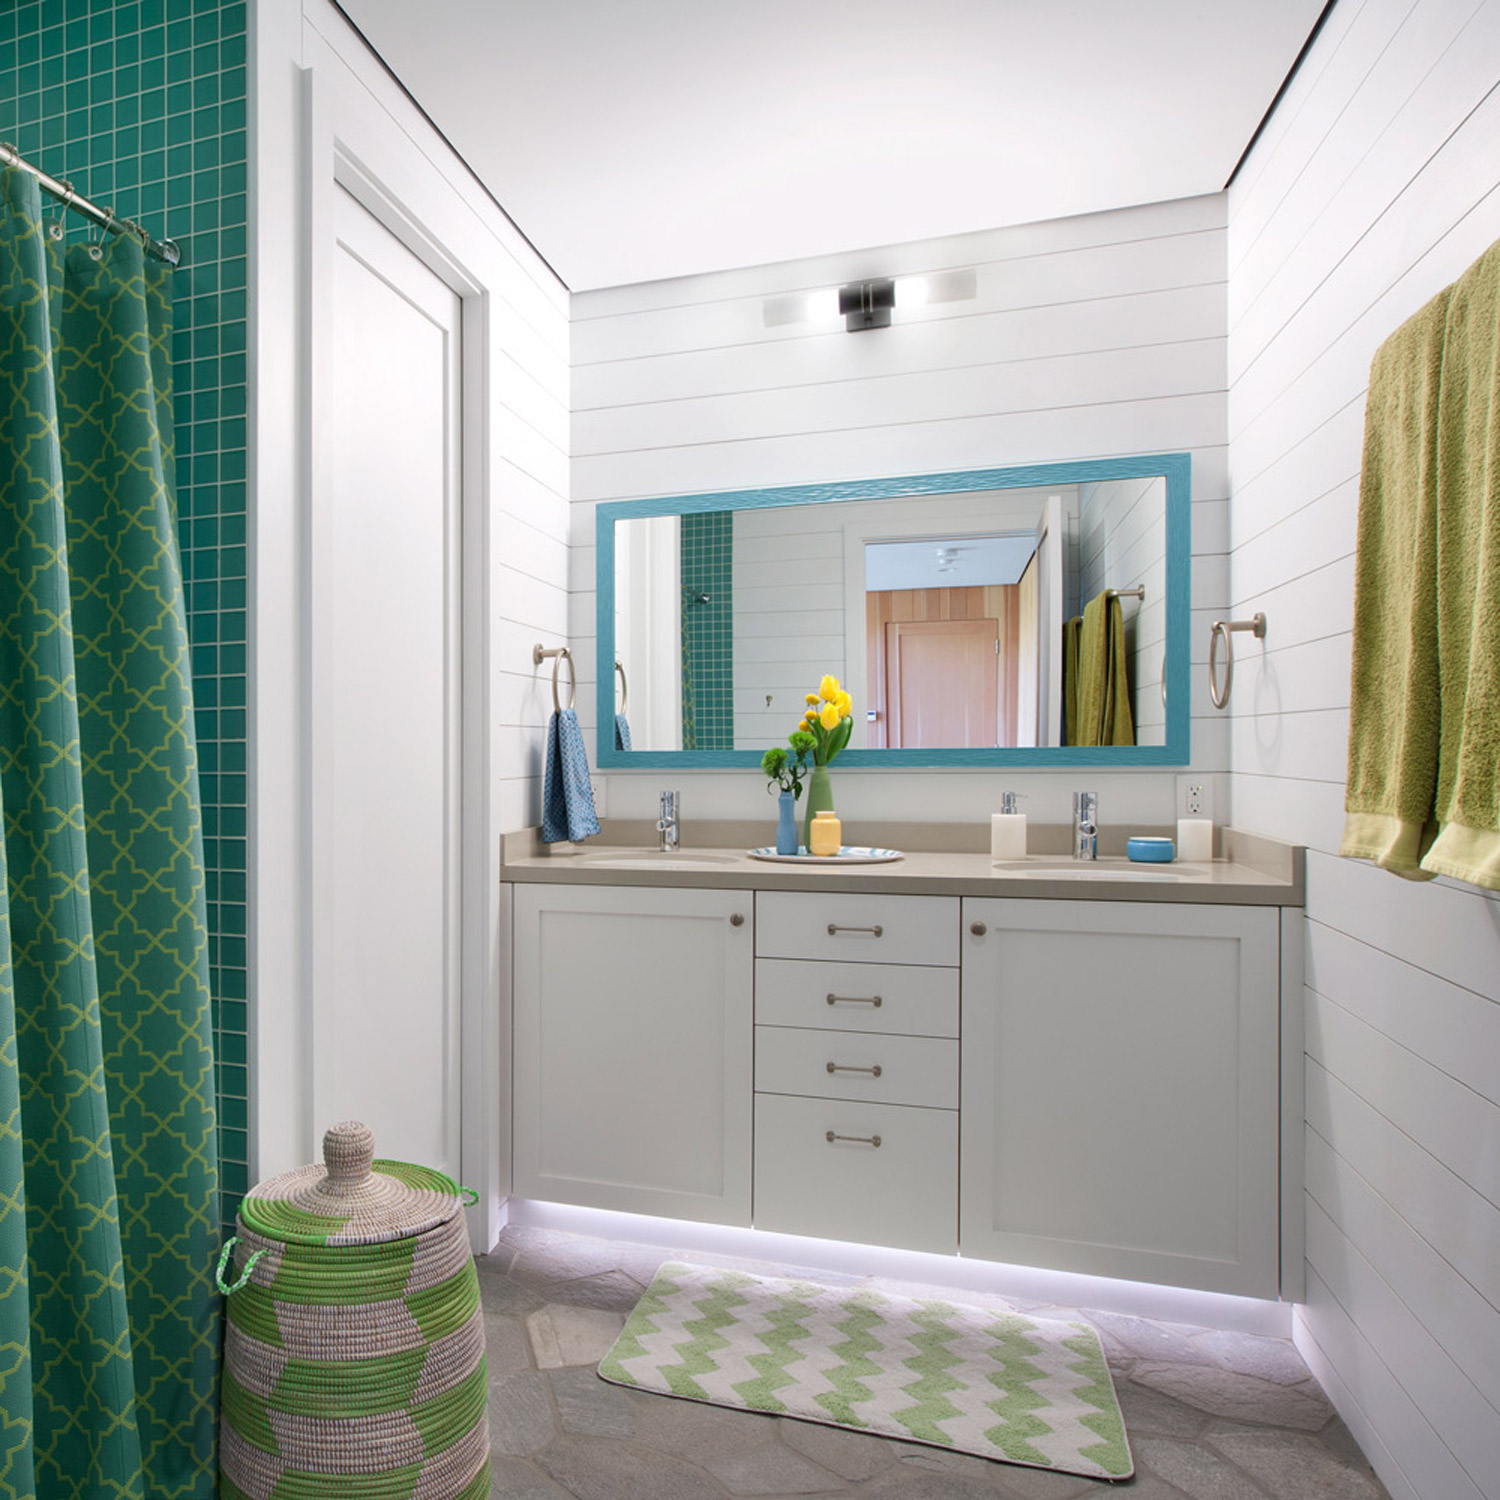 Room for Play by Lotus Bleu Design